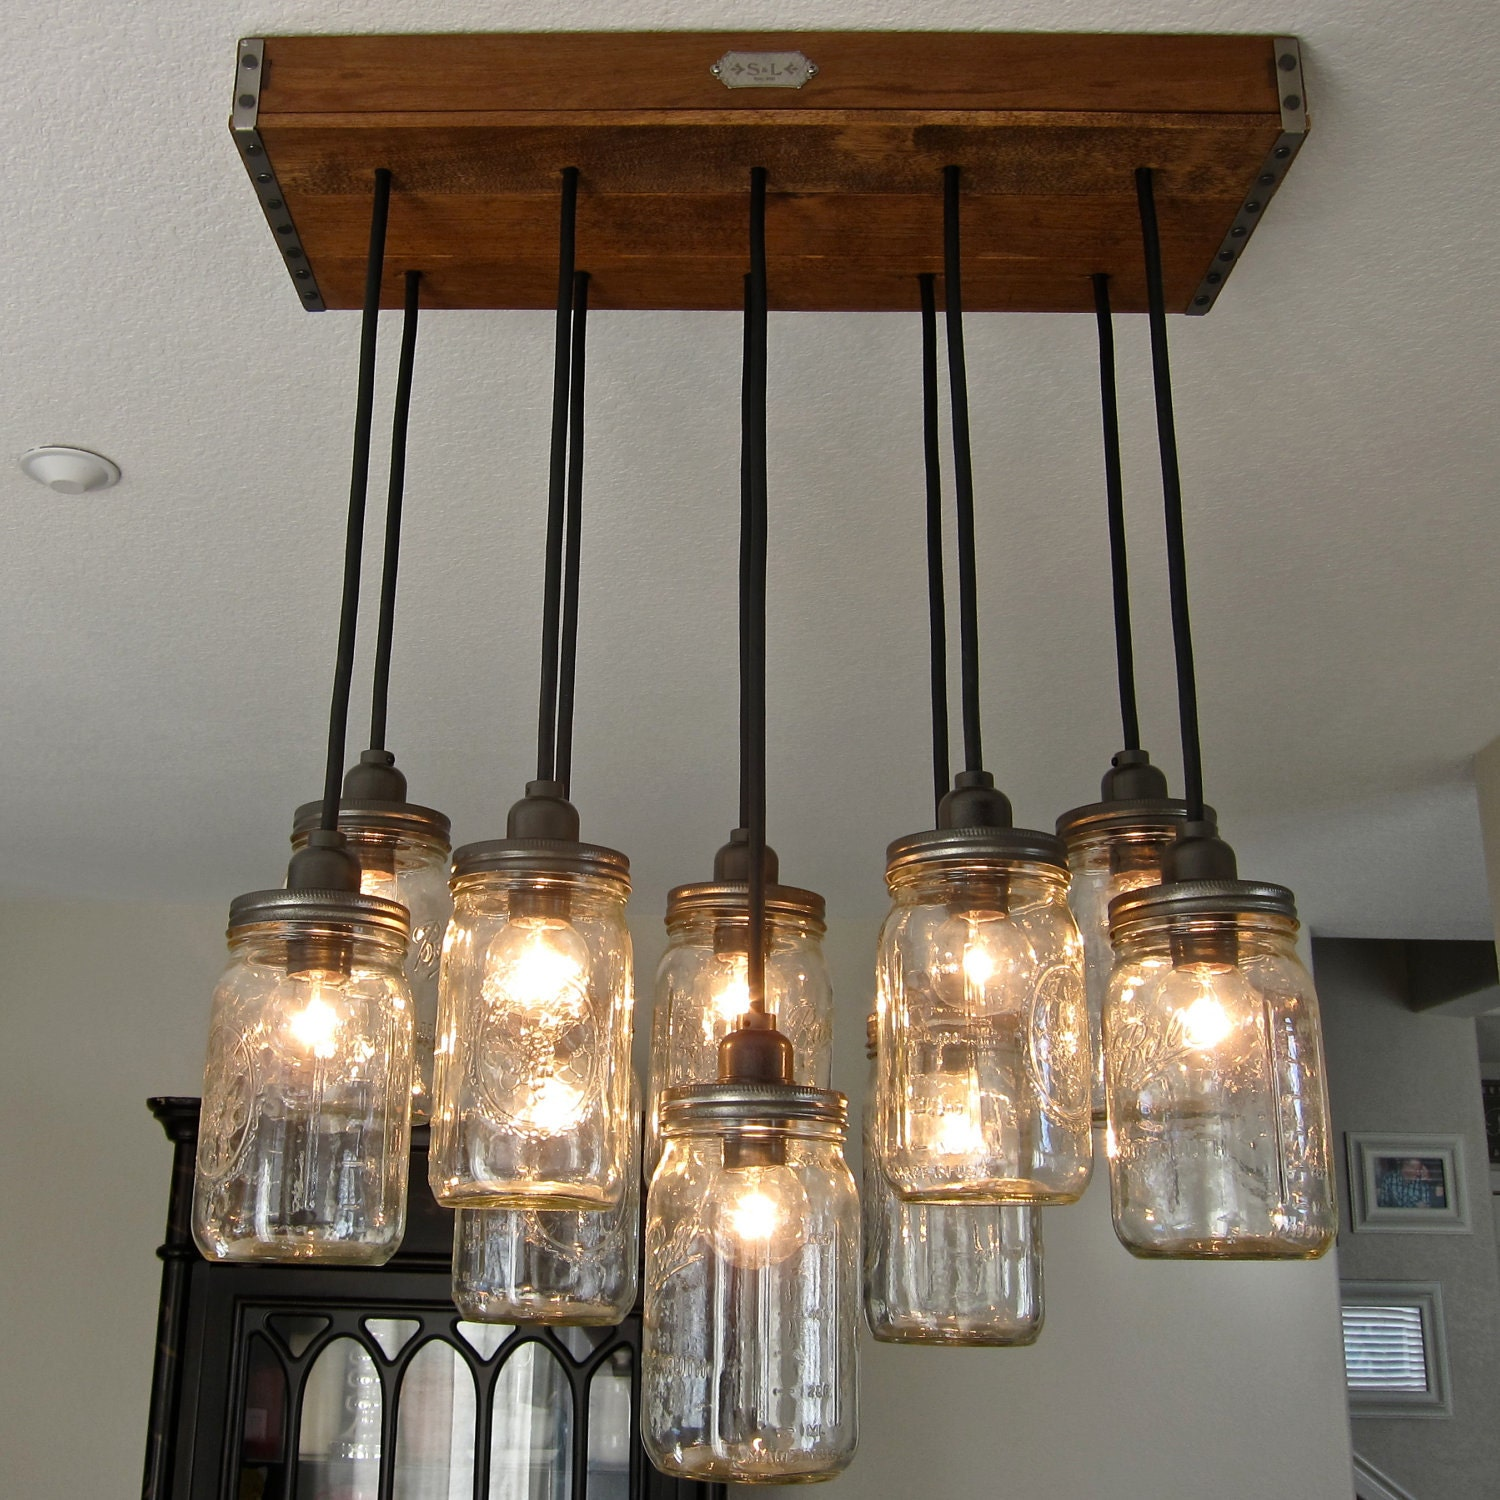 Handcrafted 14 Mason Jar Pendant Light Chandelier W Rustic